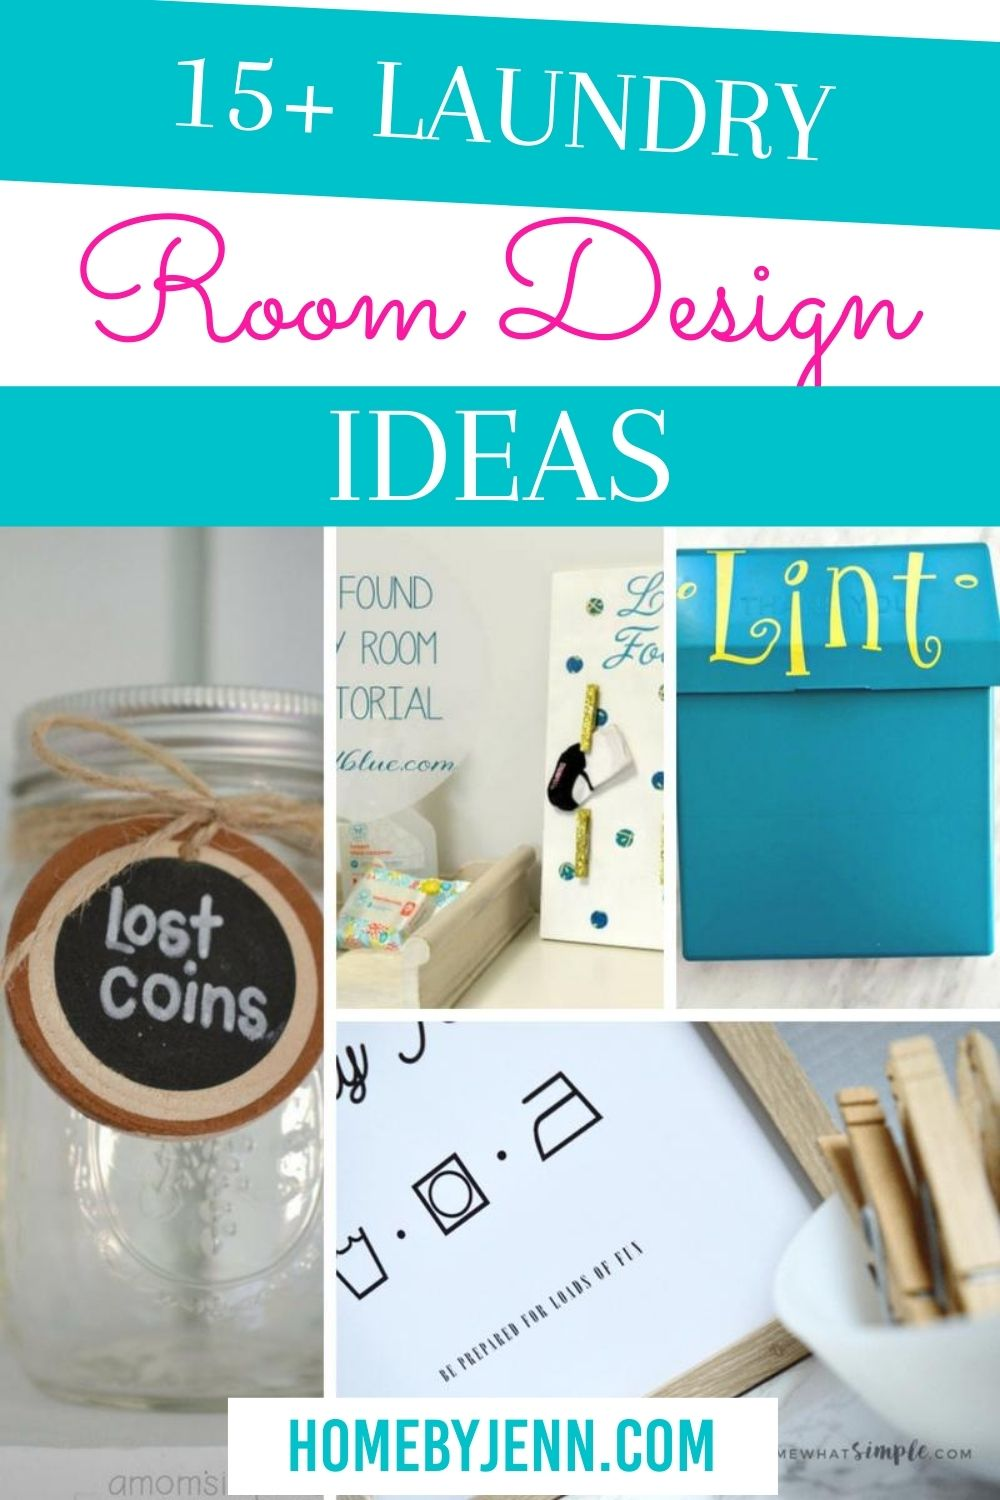 Get the best laundry room decor ideas to transform your laundry room. Become inspired to see some great laundry room decor. #laundryroom #laundryroomdecor #laundry #DIY #homedecor via @homebyjenn